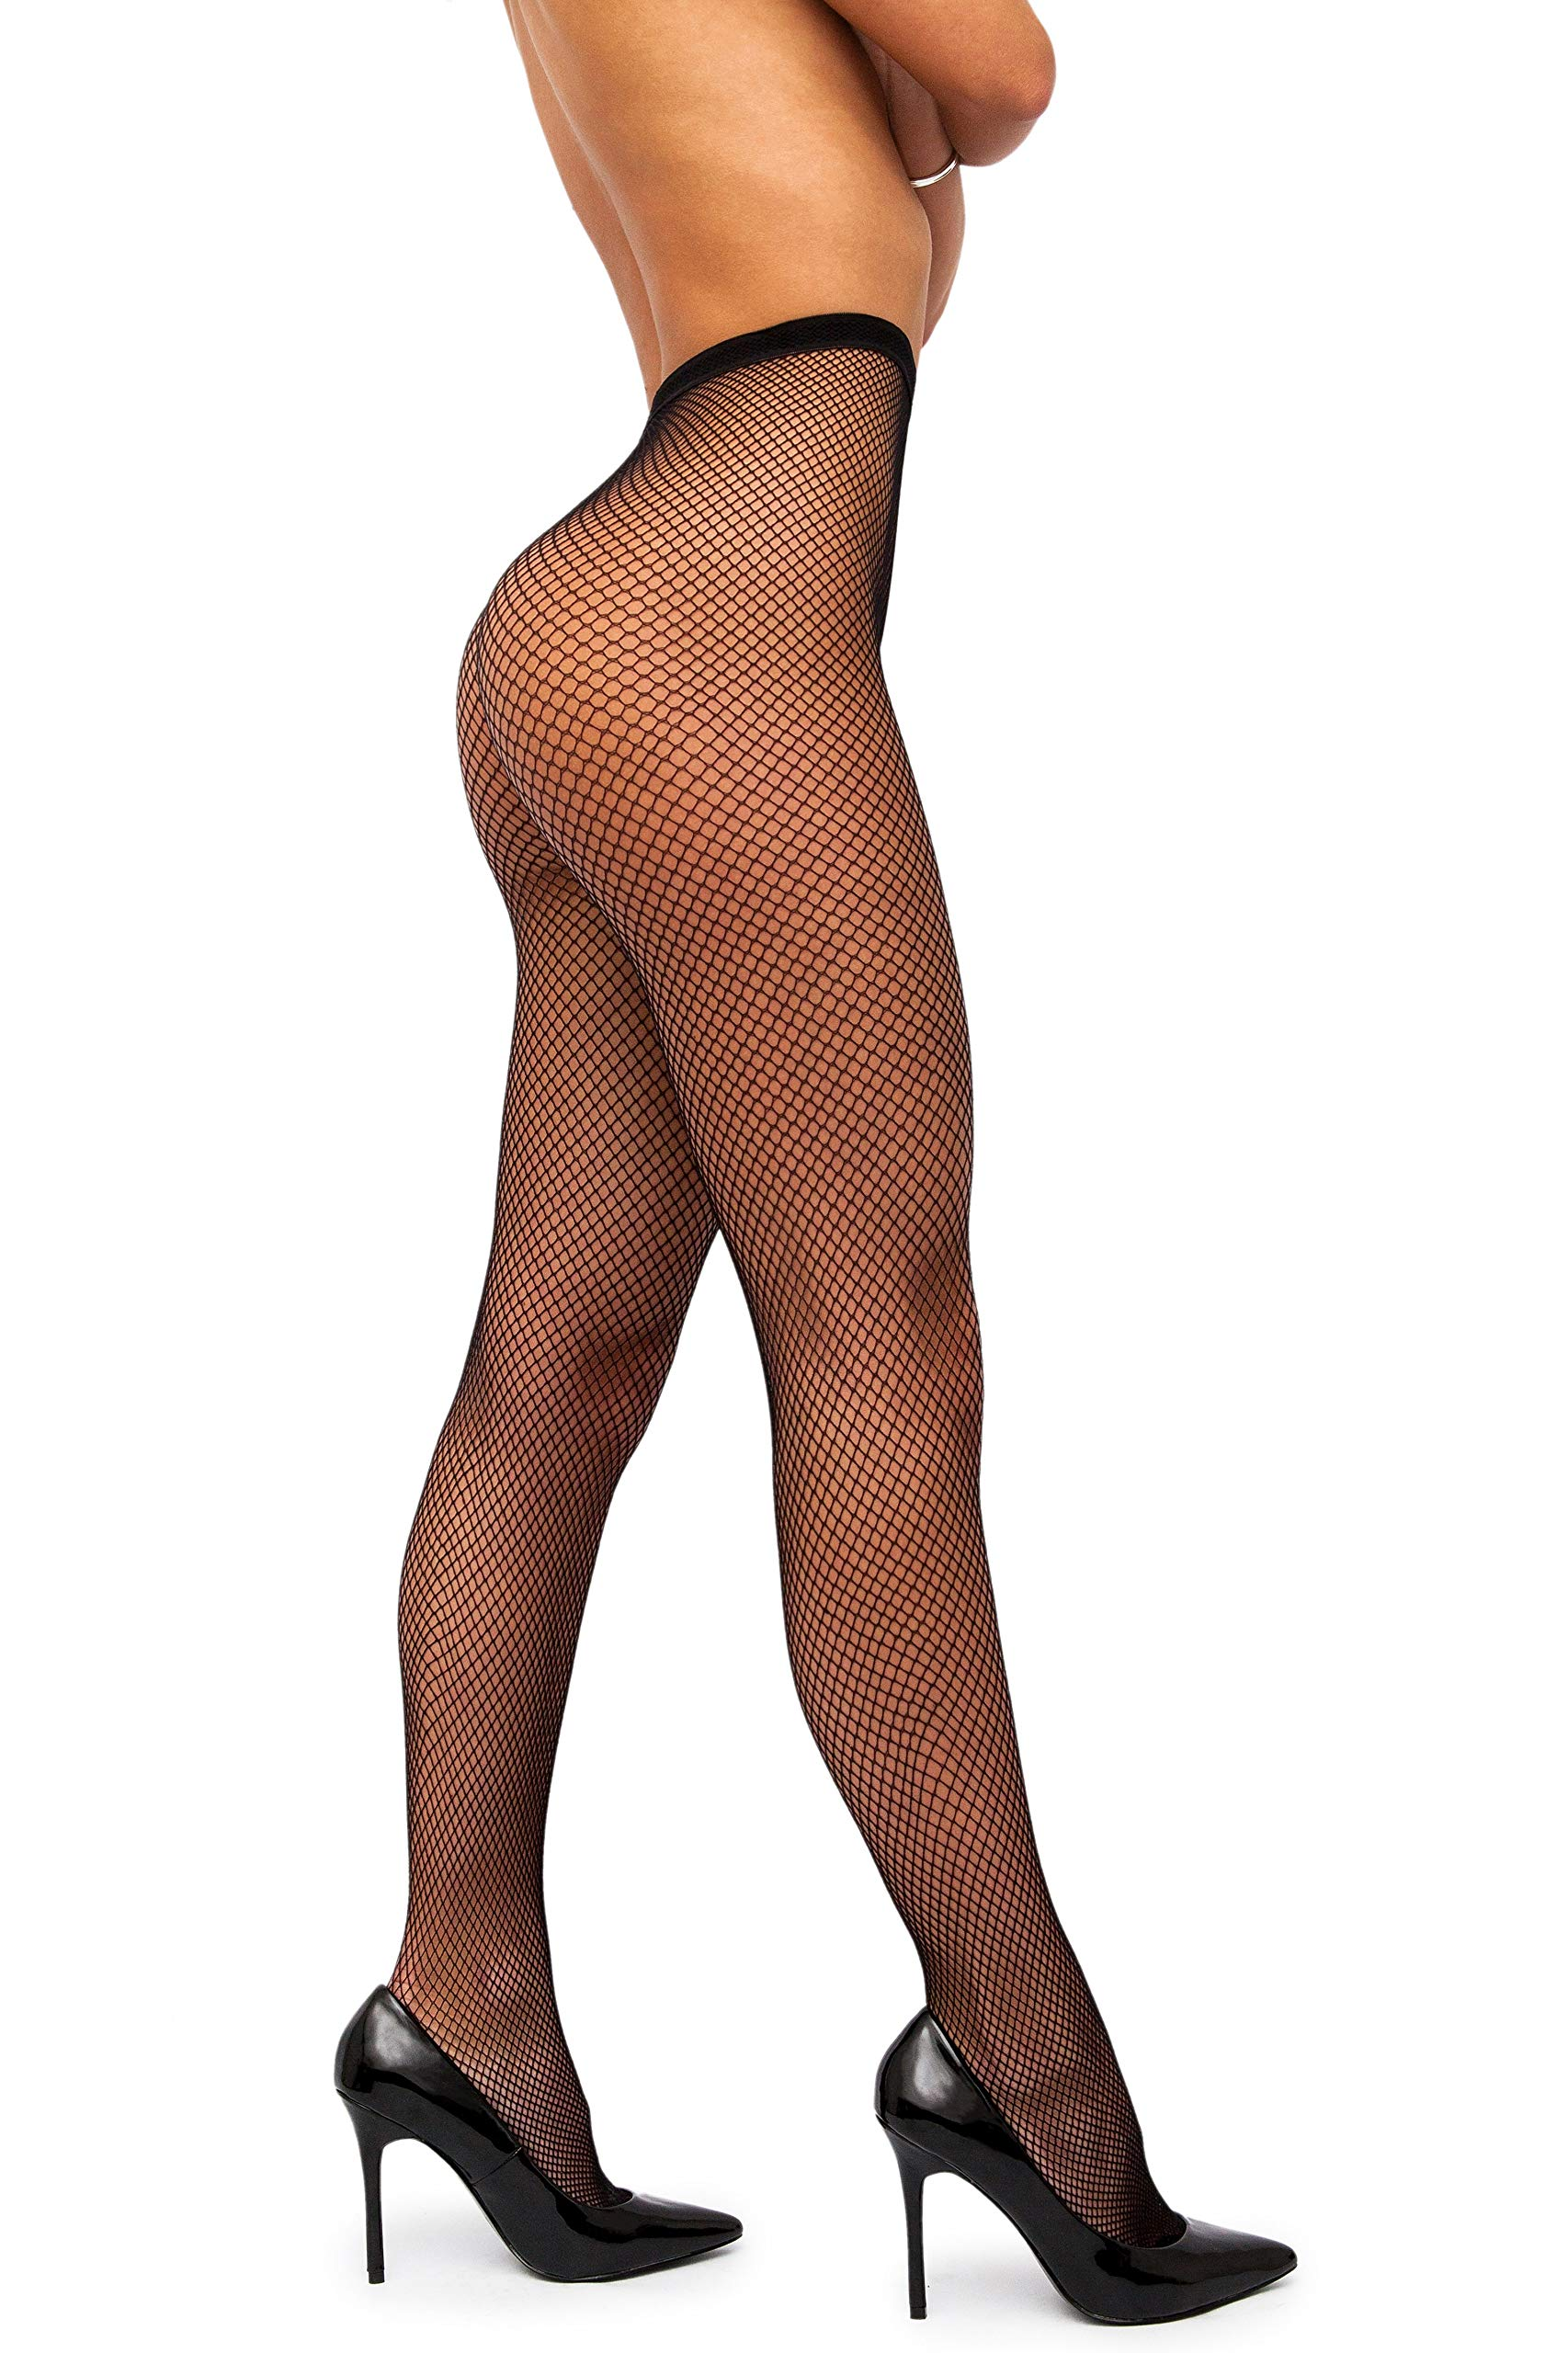 sofsy Fishnet Tights Pantyhose - High Waist Net Nylon Stockings - Lingerie [Made In Italy]